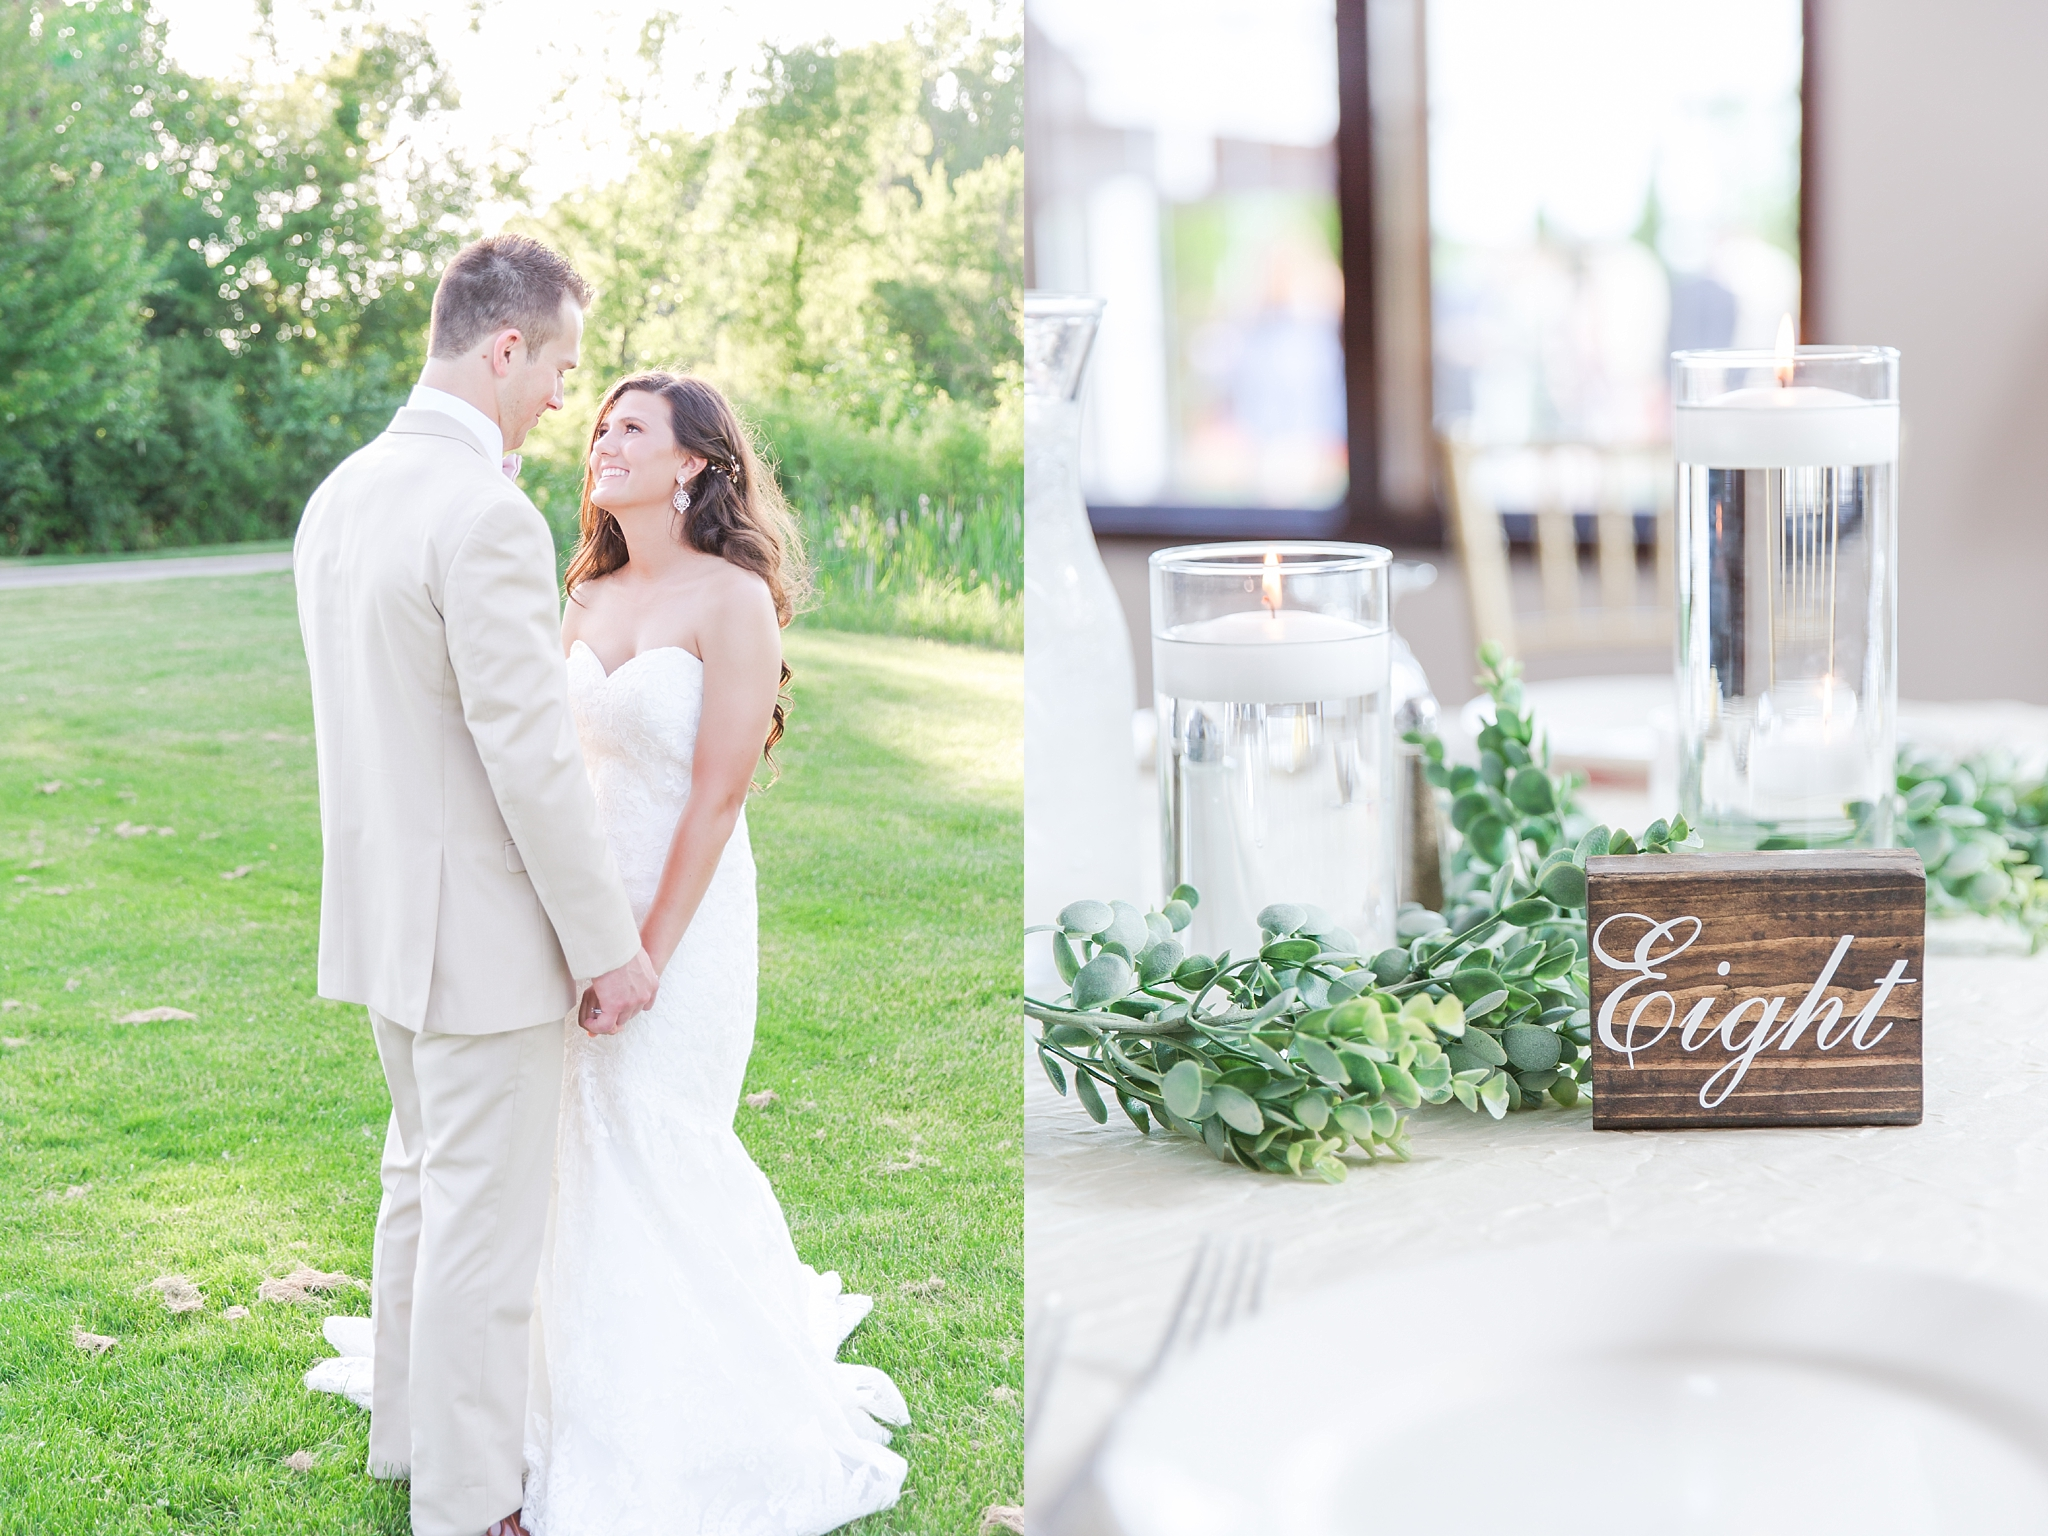 candid-timeless-wedding-photos-at-the-captains-club-in-grand-blanc-michigan-by-courtney-carolyn-photography_0080.jpg